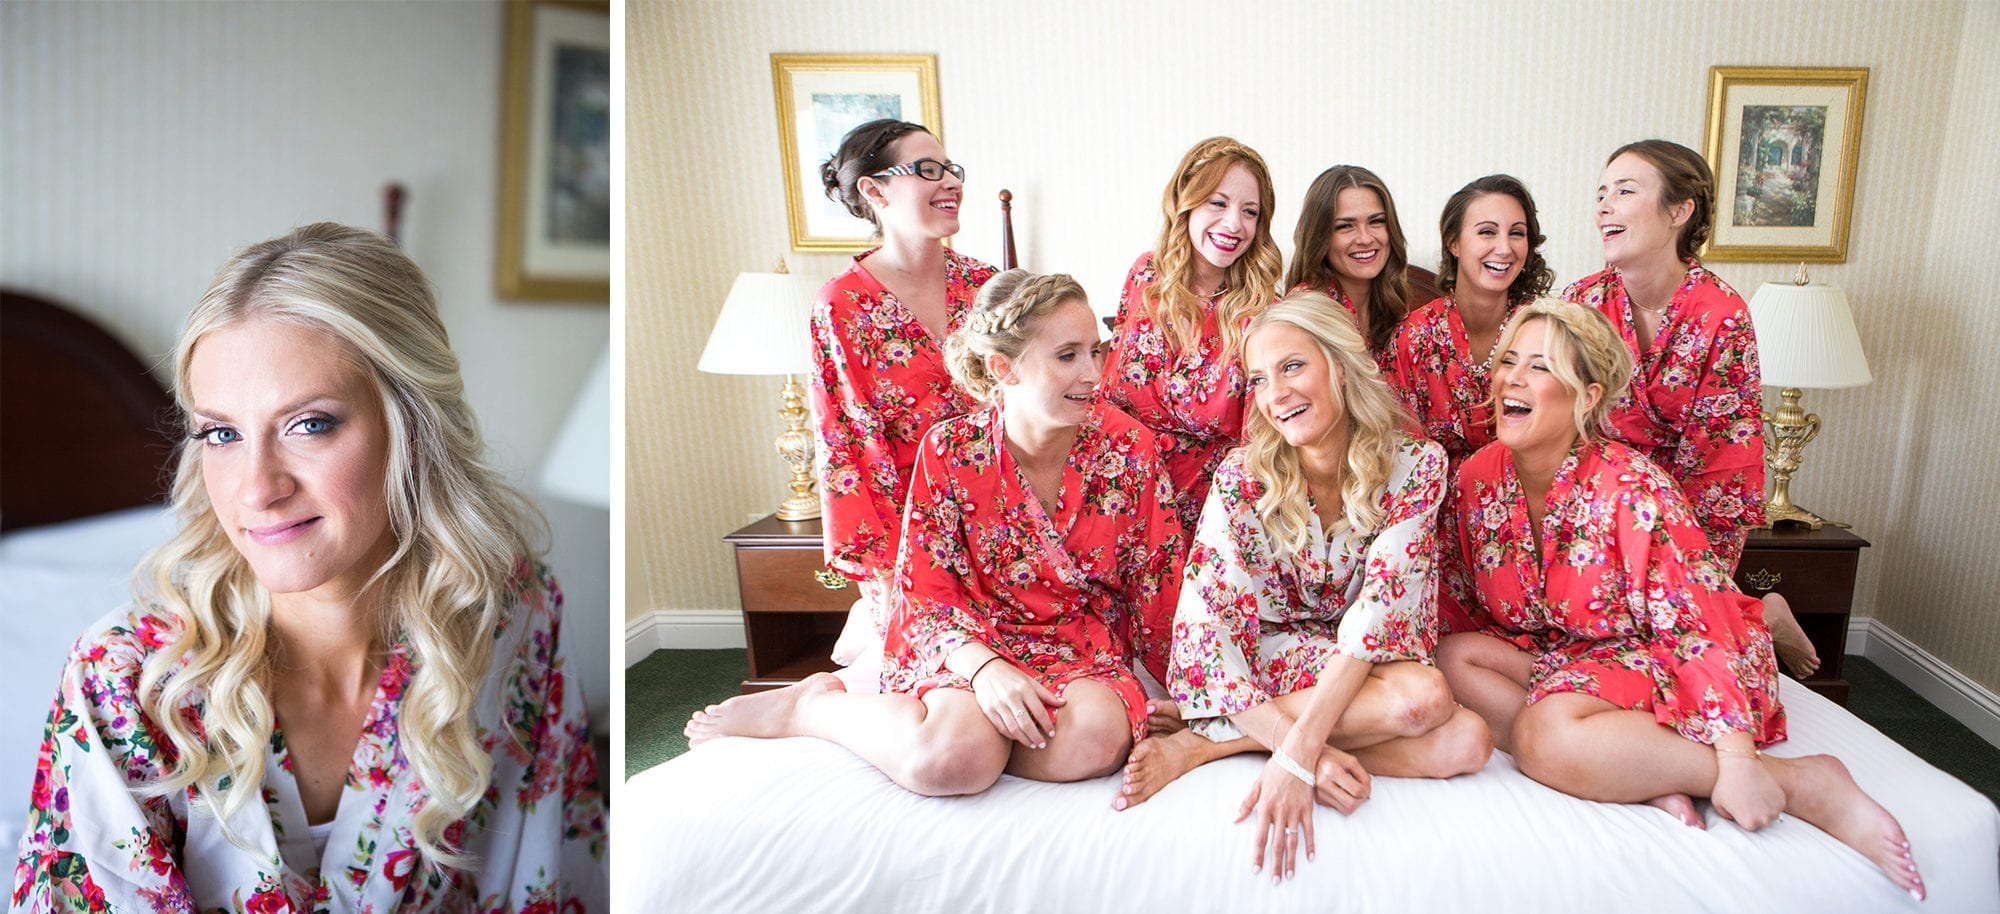 Bridesmaids Robes Legends Winery Wedding Zsuzsi Pal Photography